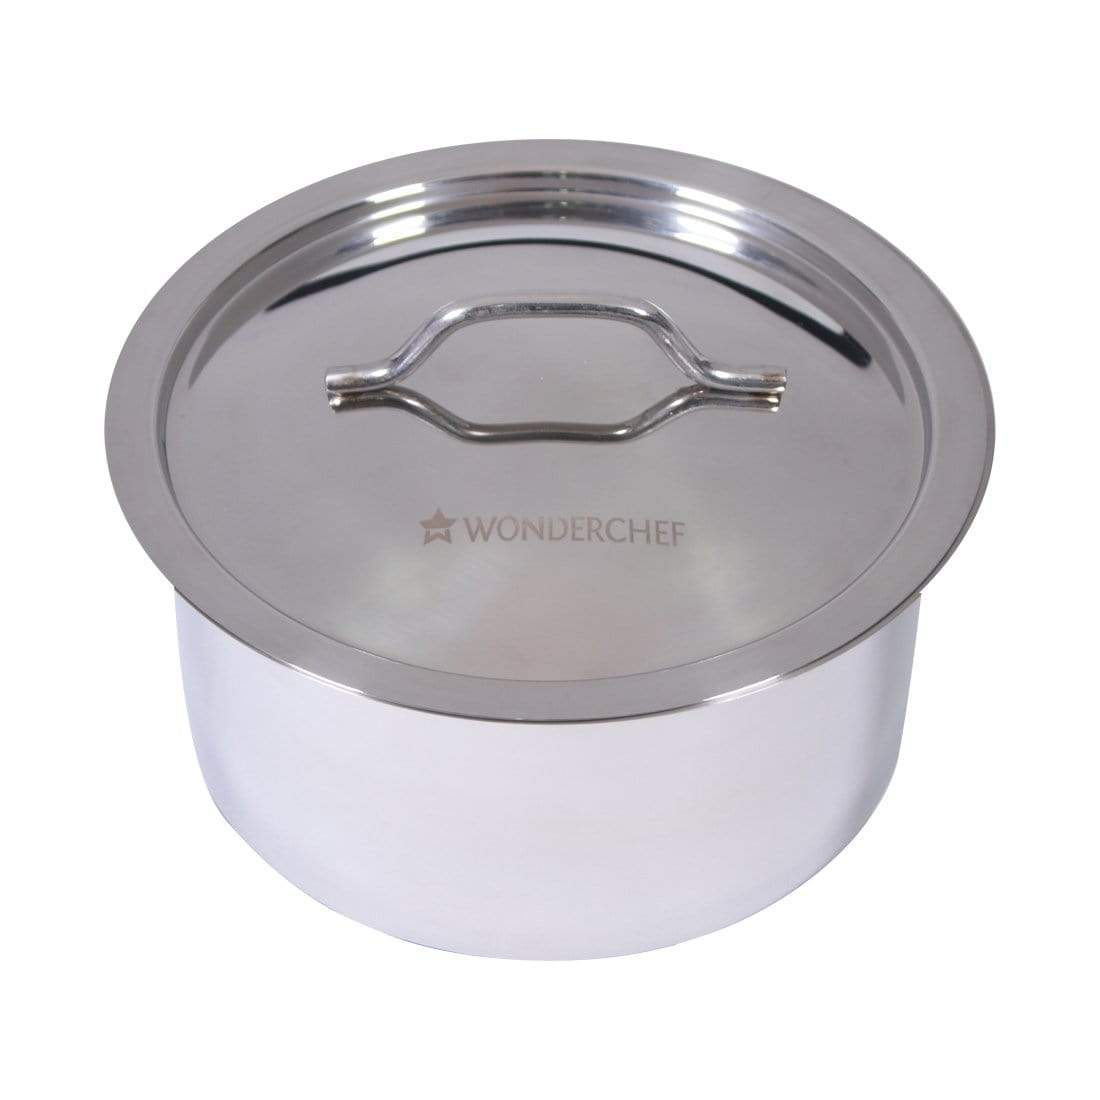 Wonderchef Stanton Cooking Pot with Lid-20 cm